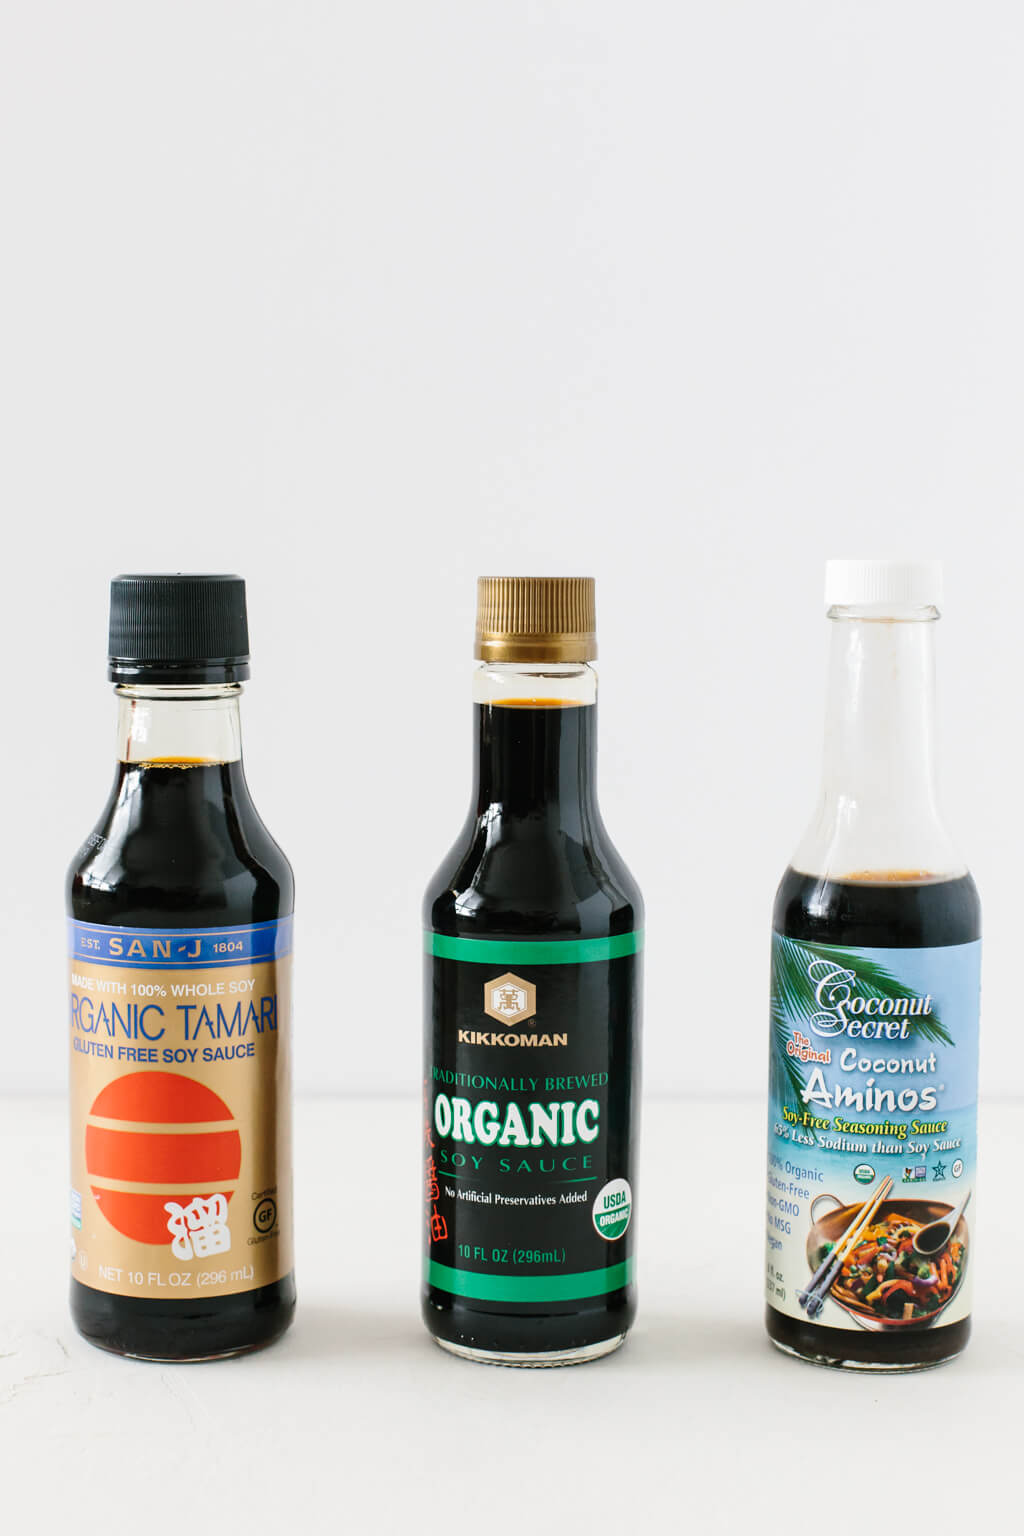 soy sauce on paleo diet?